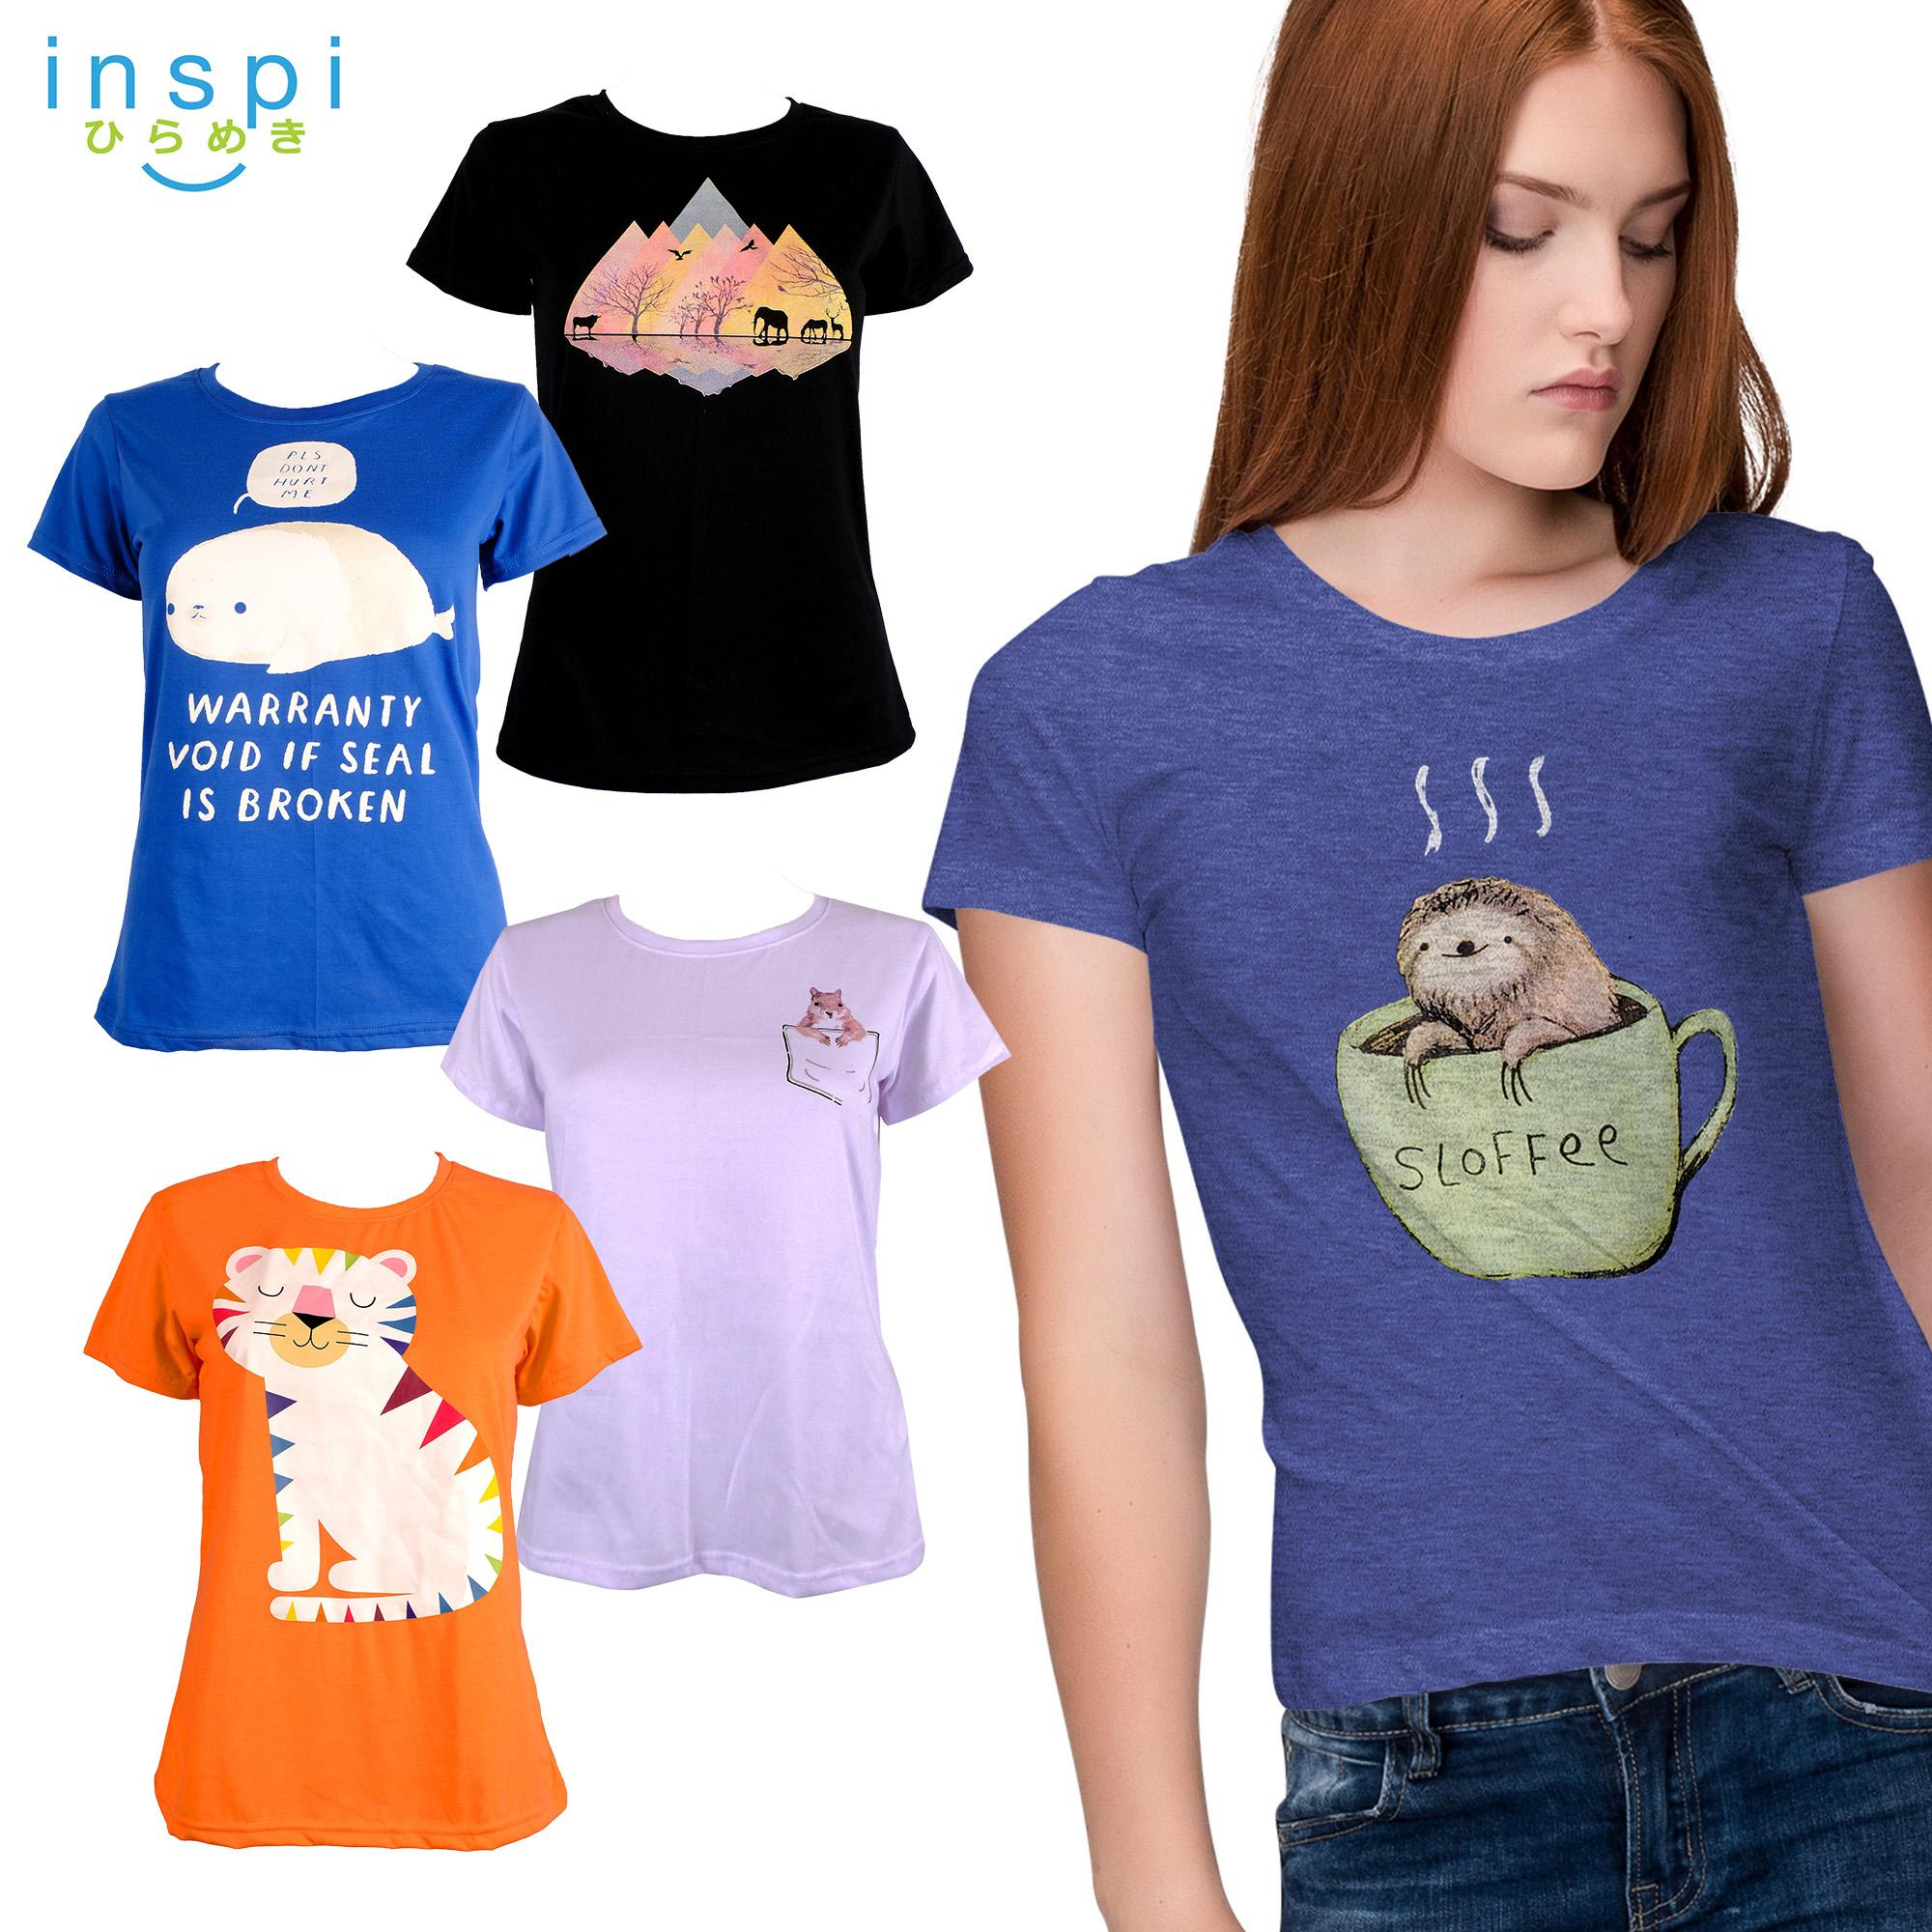 229e8d706 INSPI Tees Ladies Pet Collection tshirt printed graphic tee Ladies t shirt  shirts women tshirts for